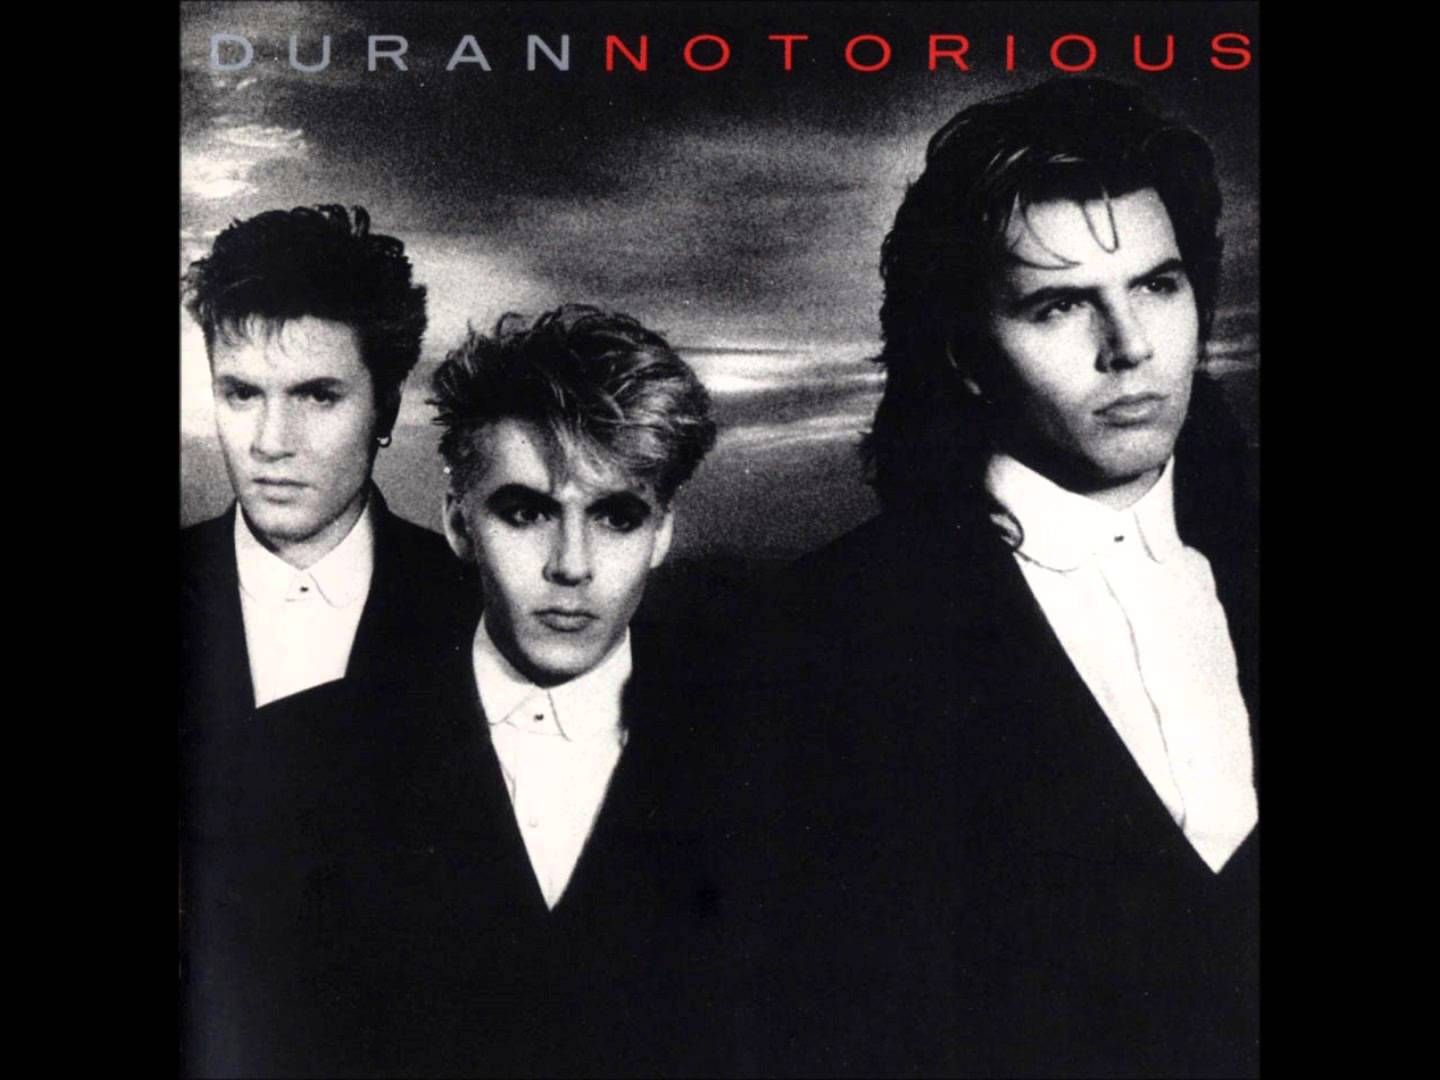 Duran Duran Notorious Full Album One Of My Favorite Bands From